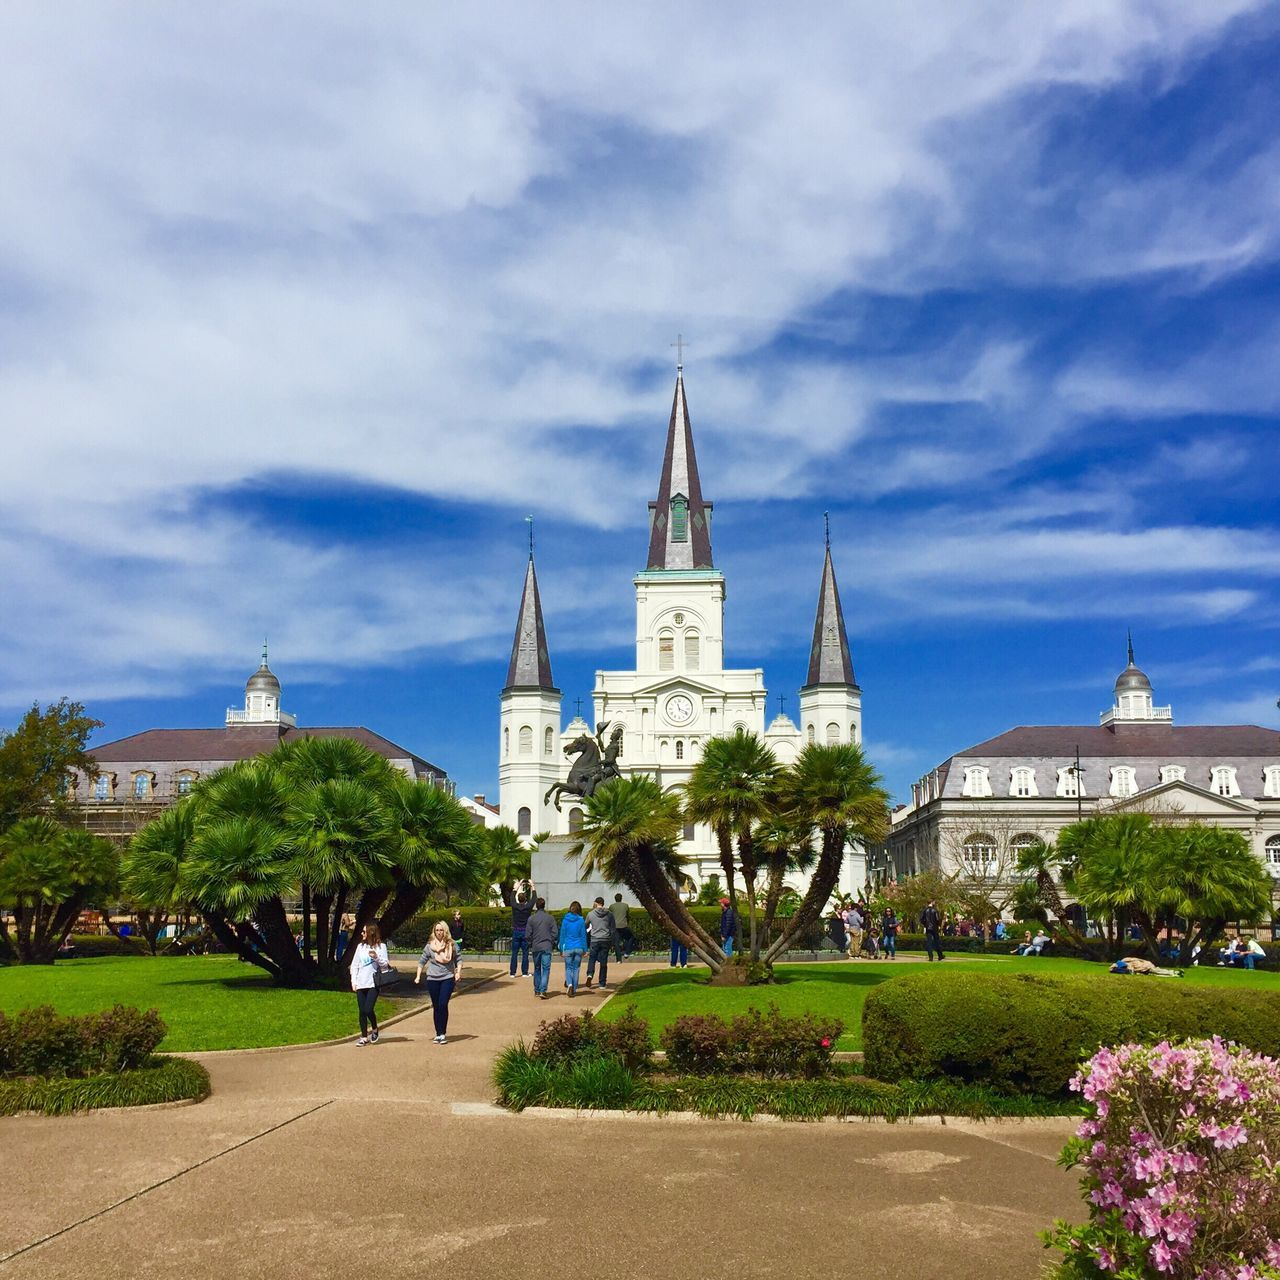 A view of Jackson Square - Nola 2016! Architecture Sky Outdoors Tree Cloud - Sky New Orleans Jackson Square Scenic Blue Sky Tourist Attraction  Tourism French Quarter Building Exterior Beautiful Background Picturesque